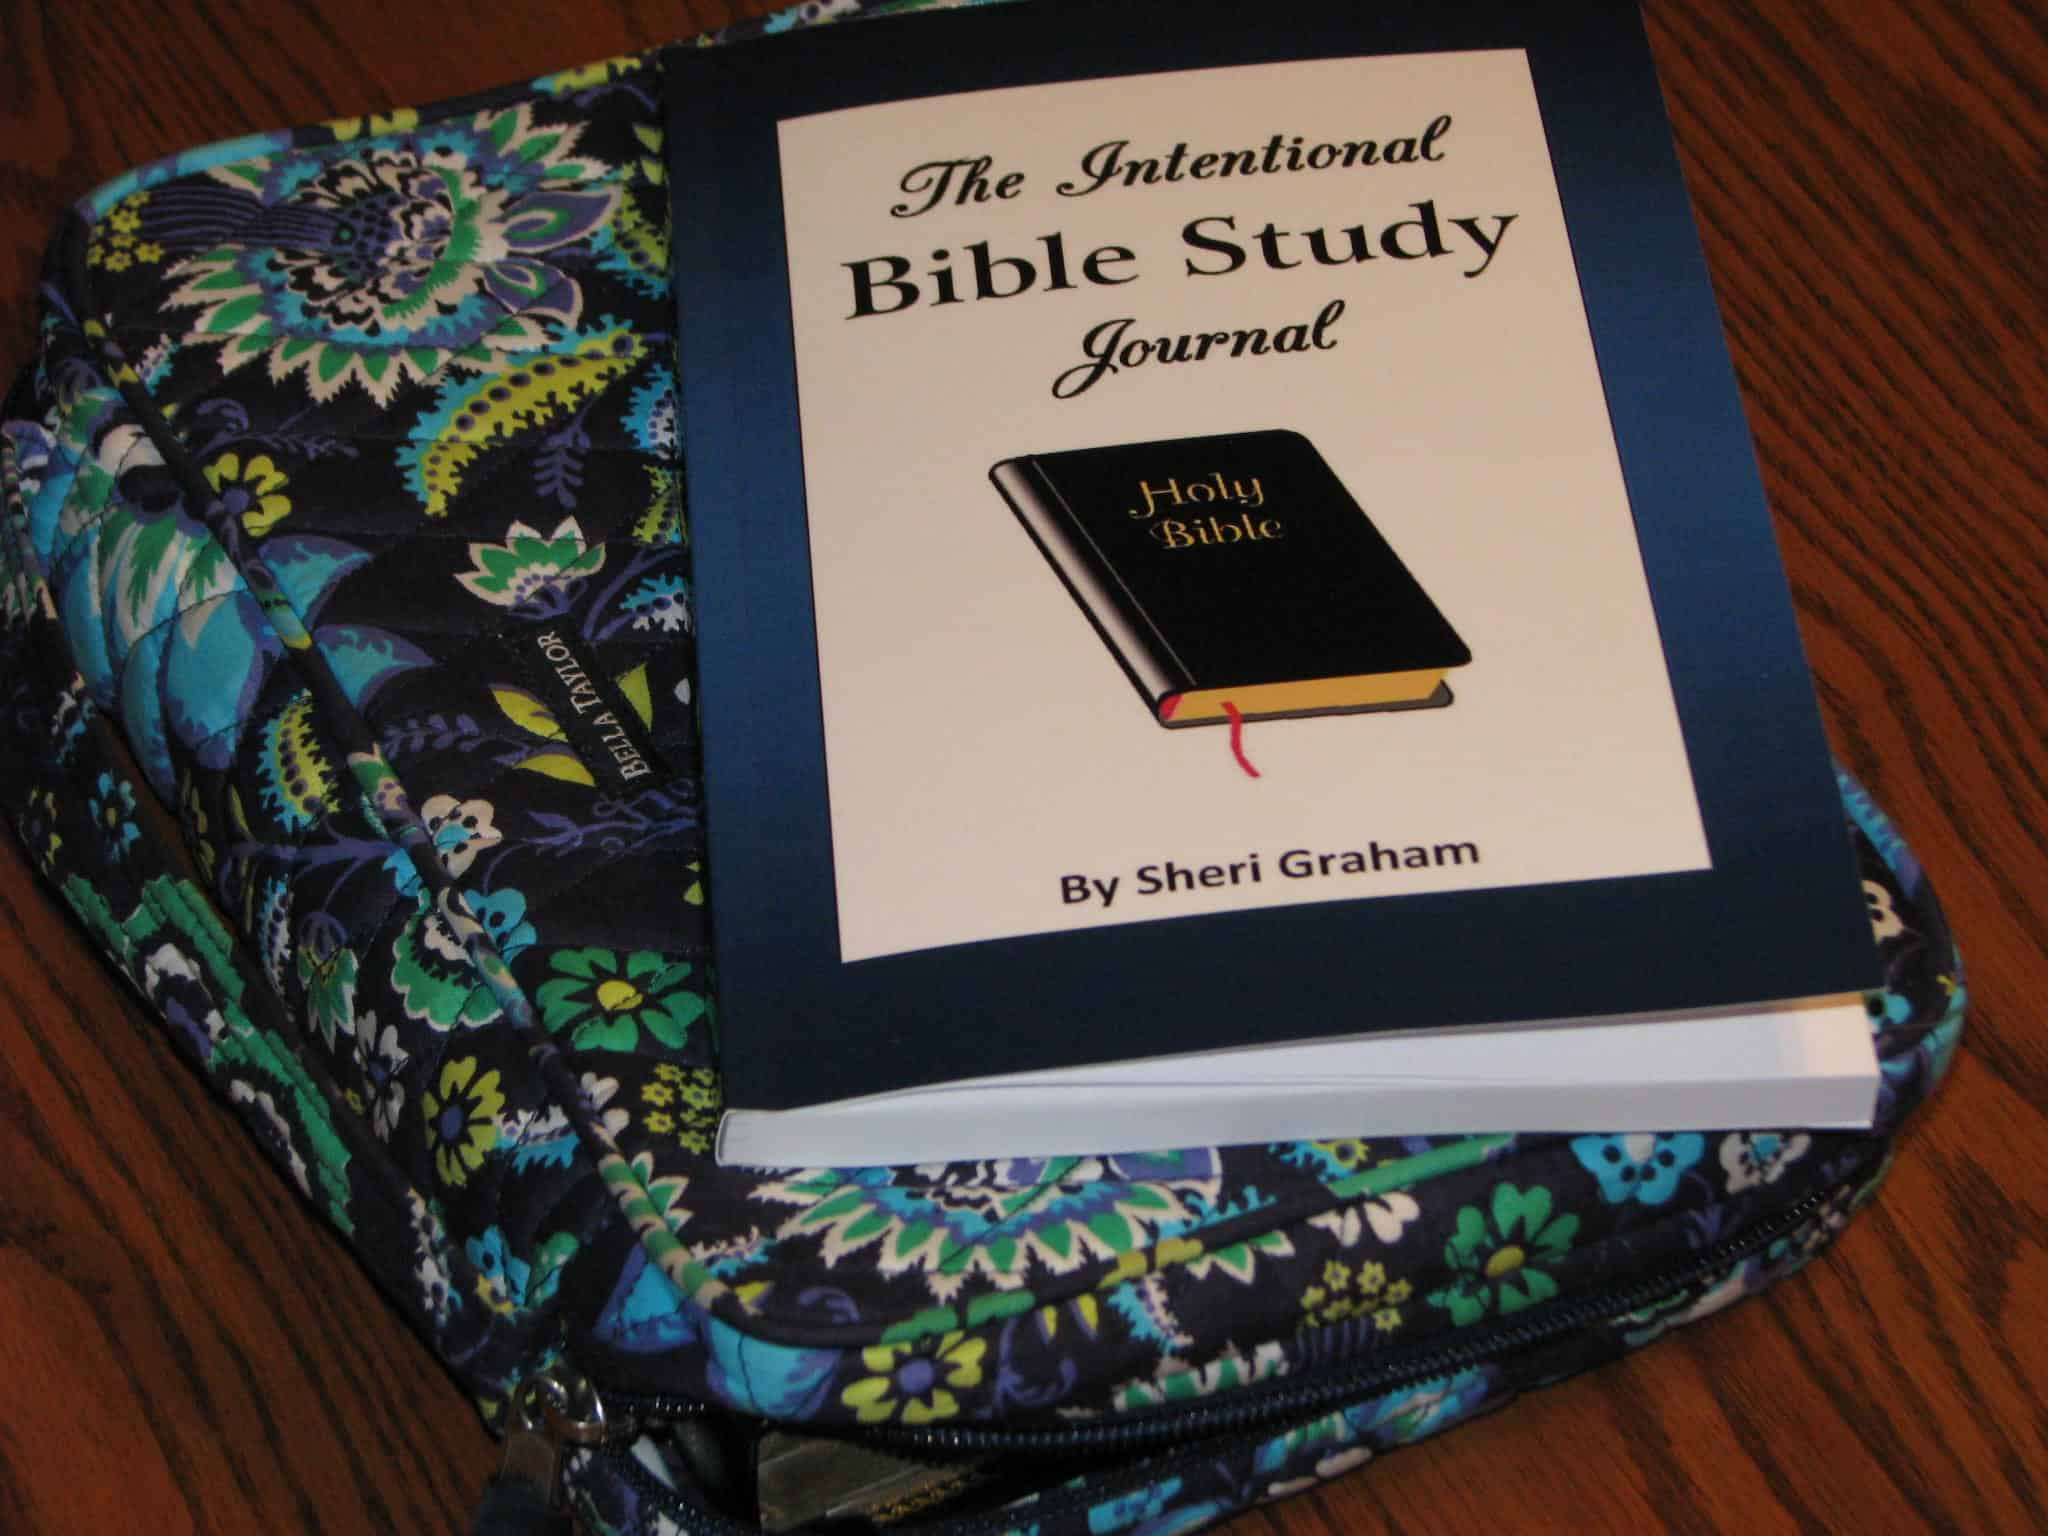 My study through Galatians with The Intentional Bible Study Journal